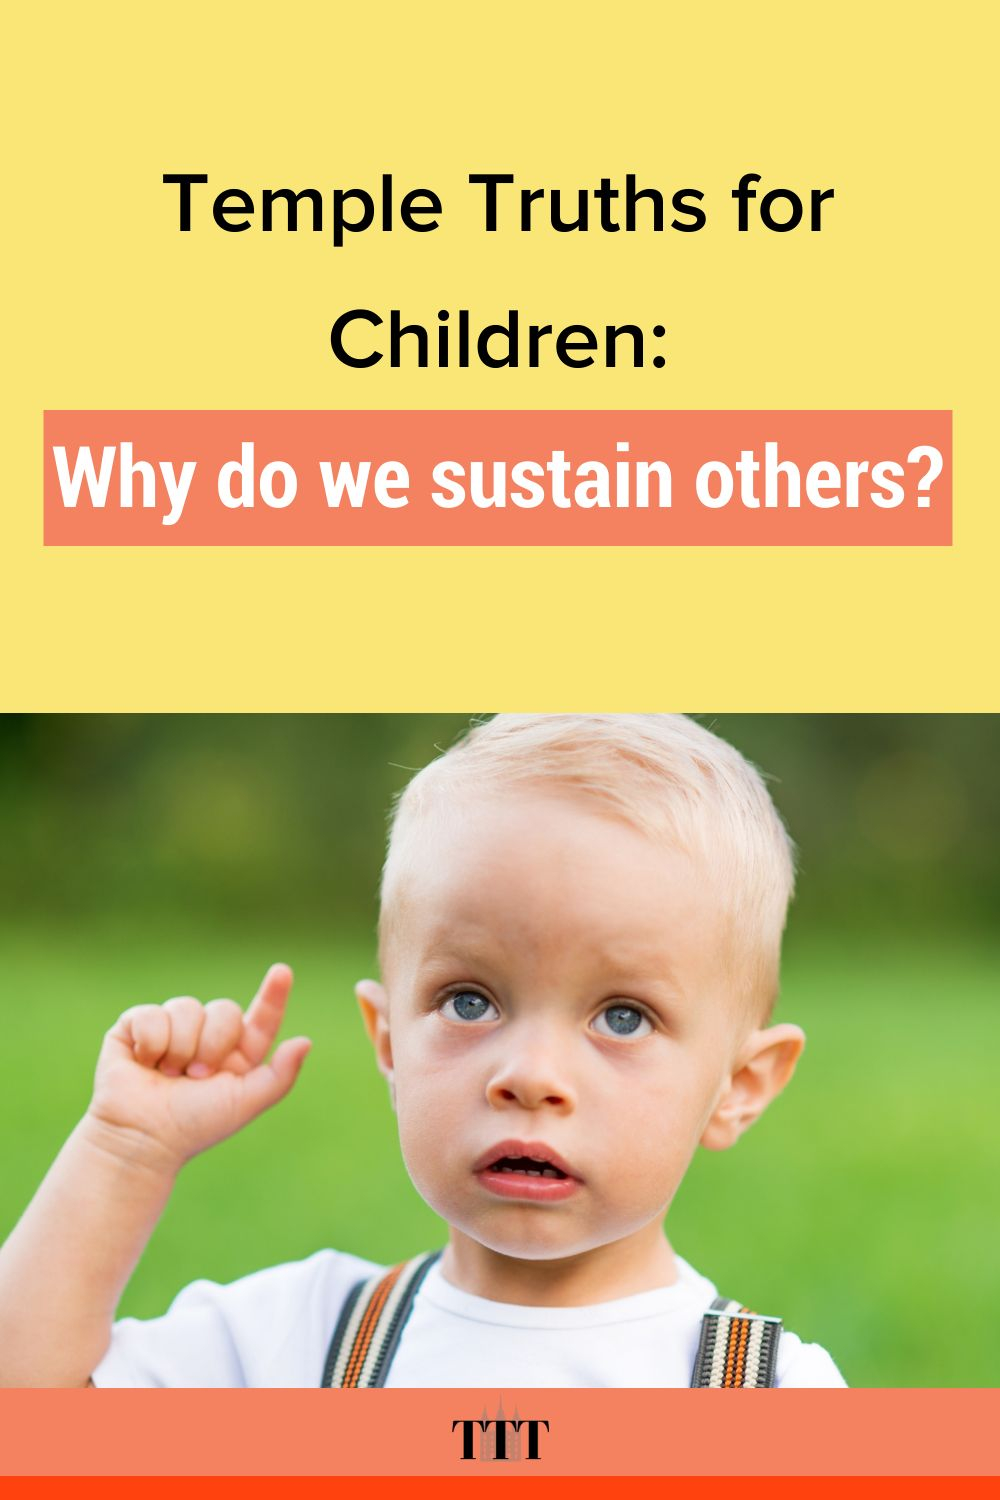 Temple Truths for Children: Why do we sustaing others?